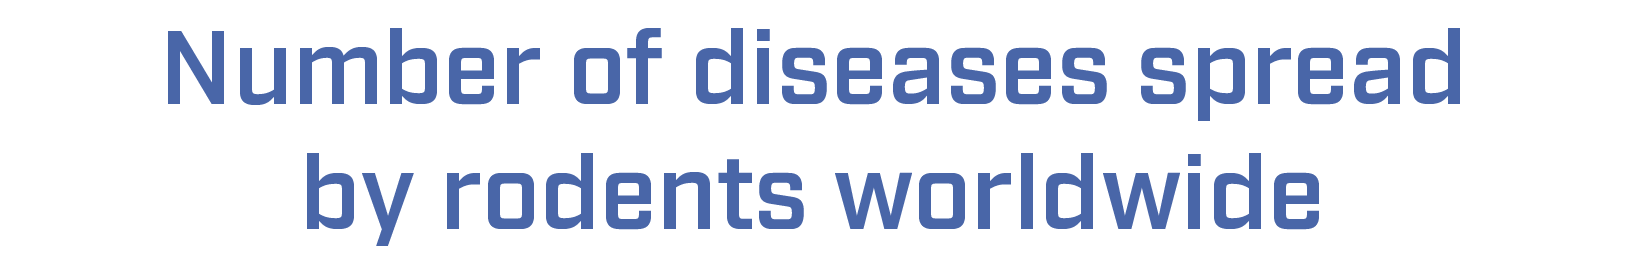 Number of diseases spread by rodents worldwide